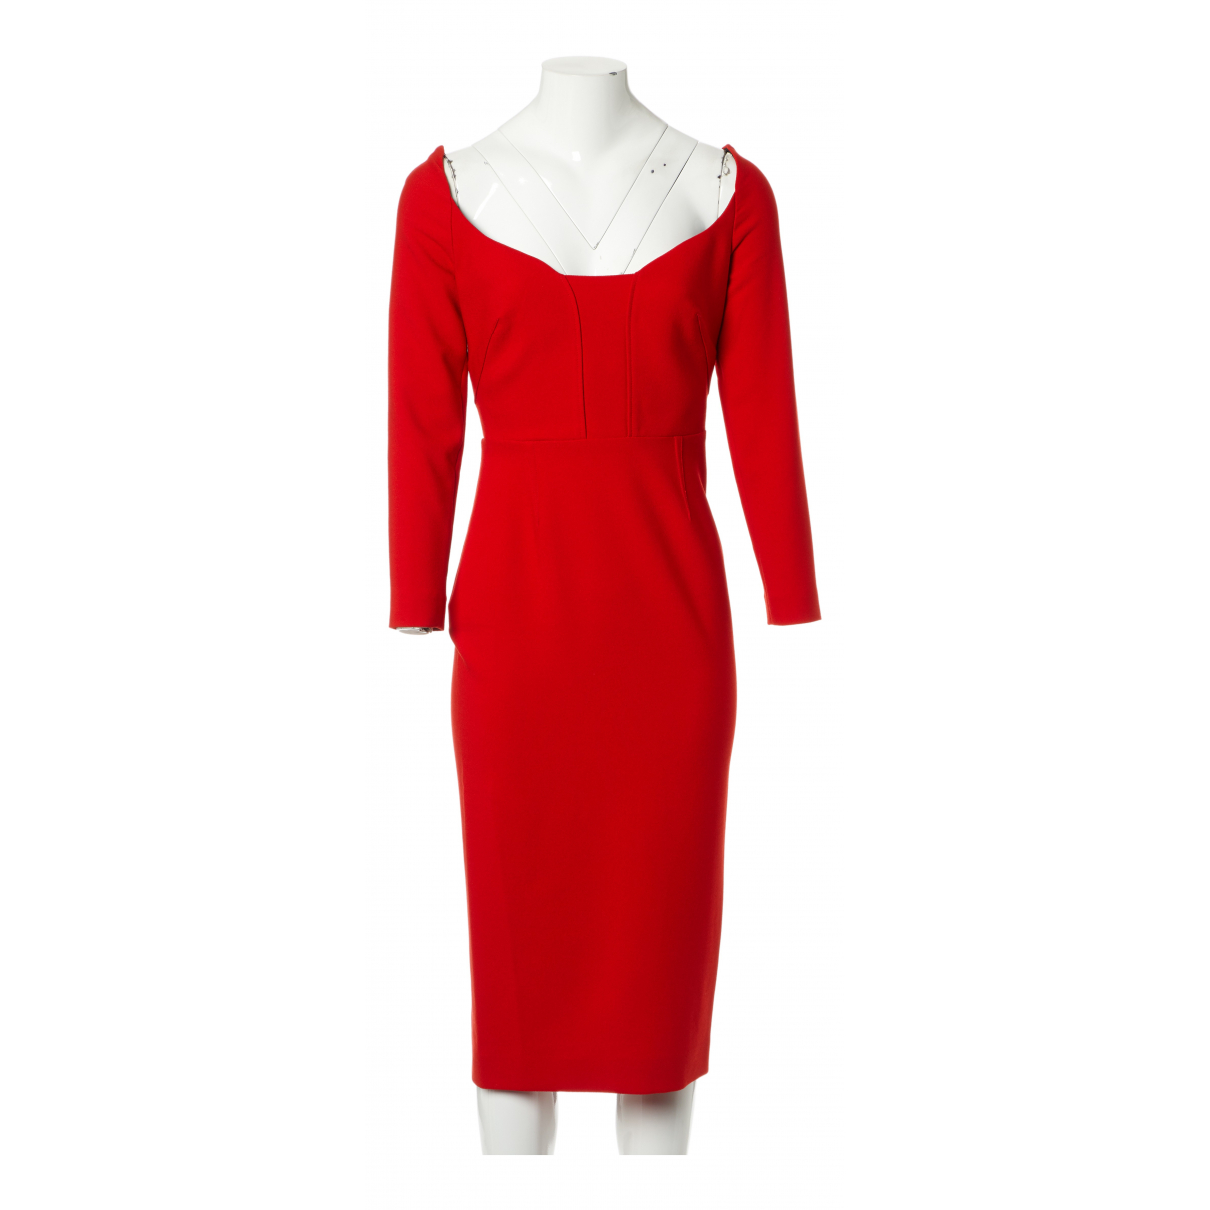 Roland Mouret \N Kleid in  Rot Polyester